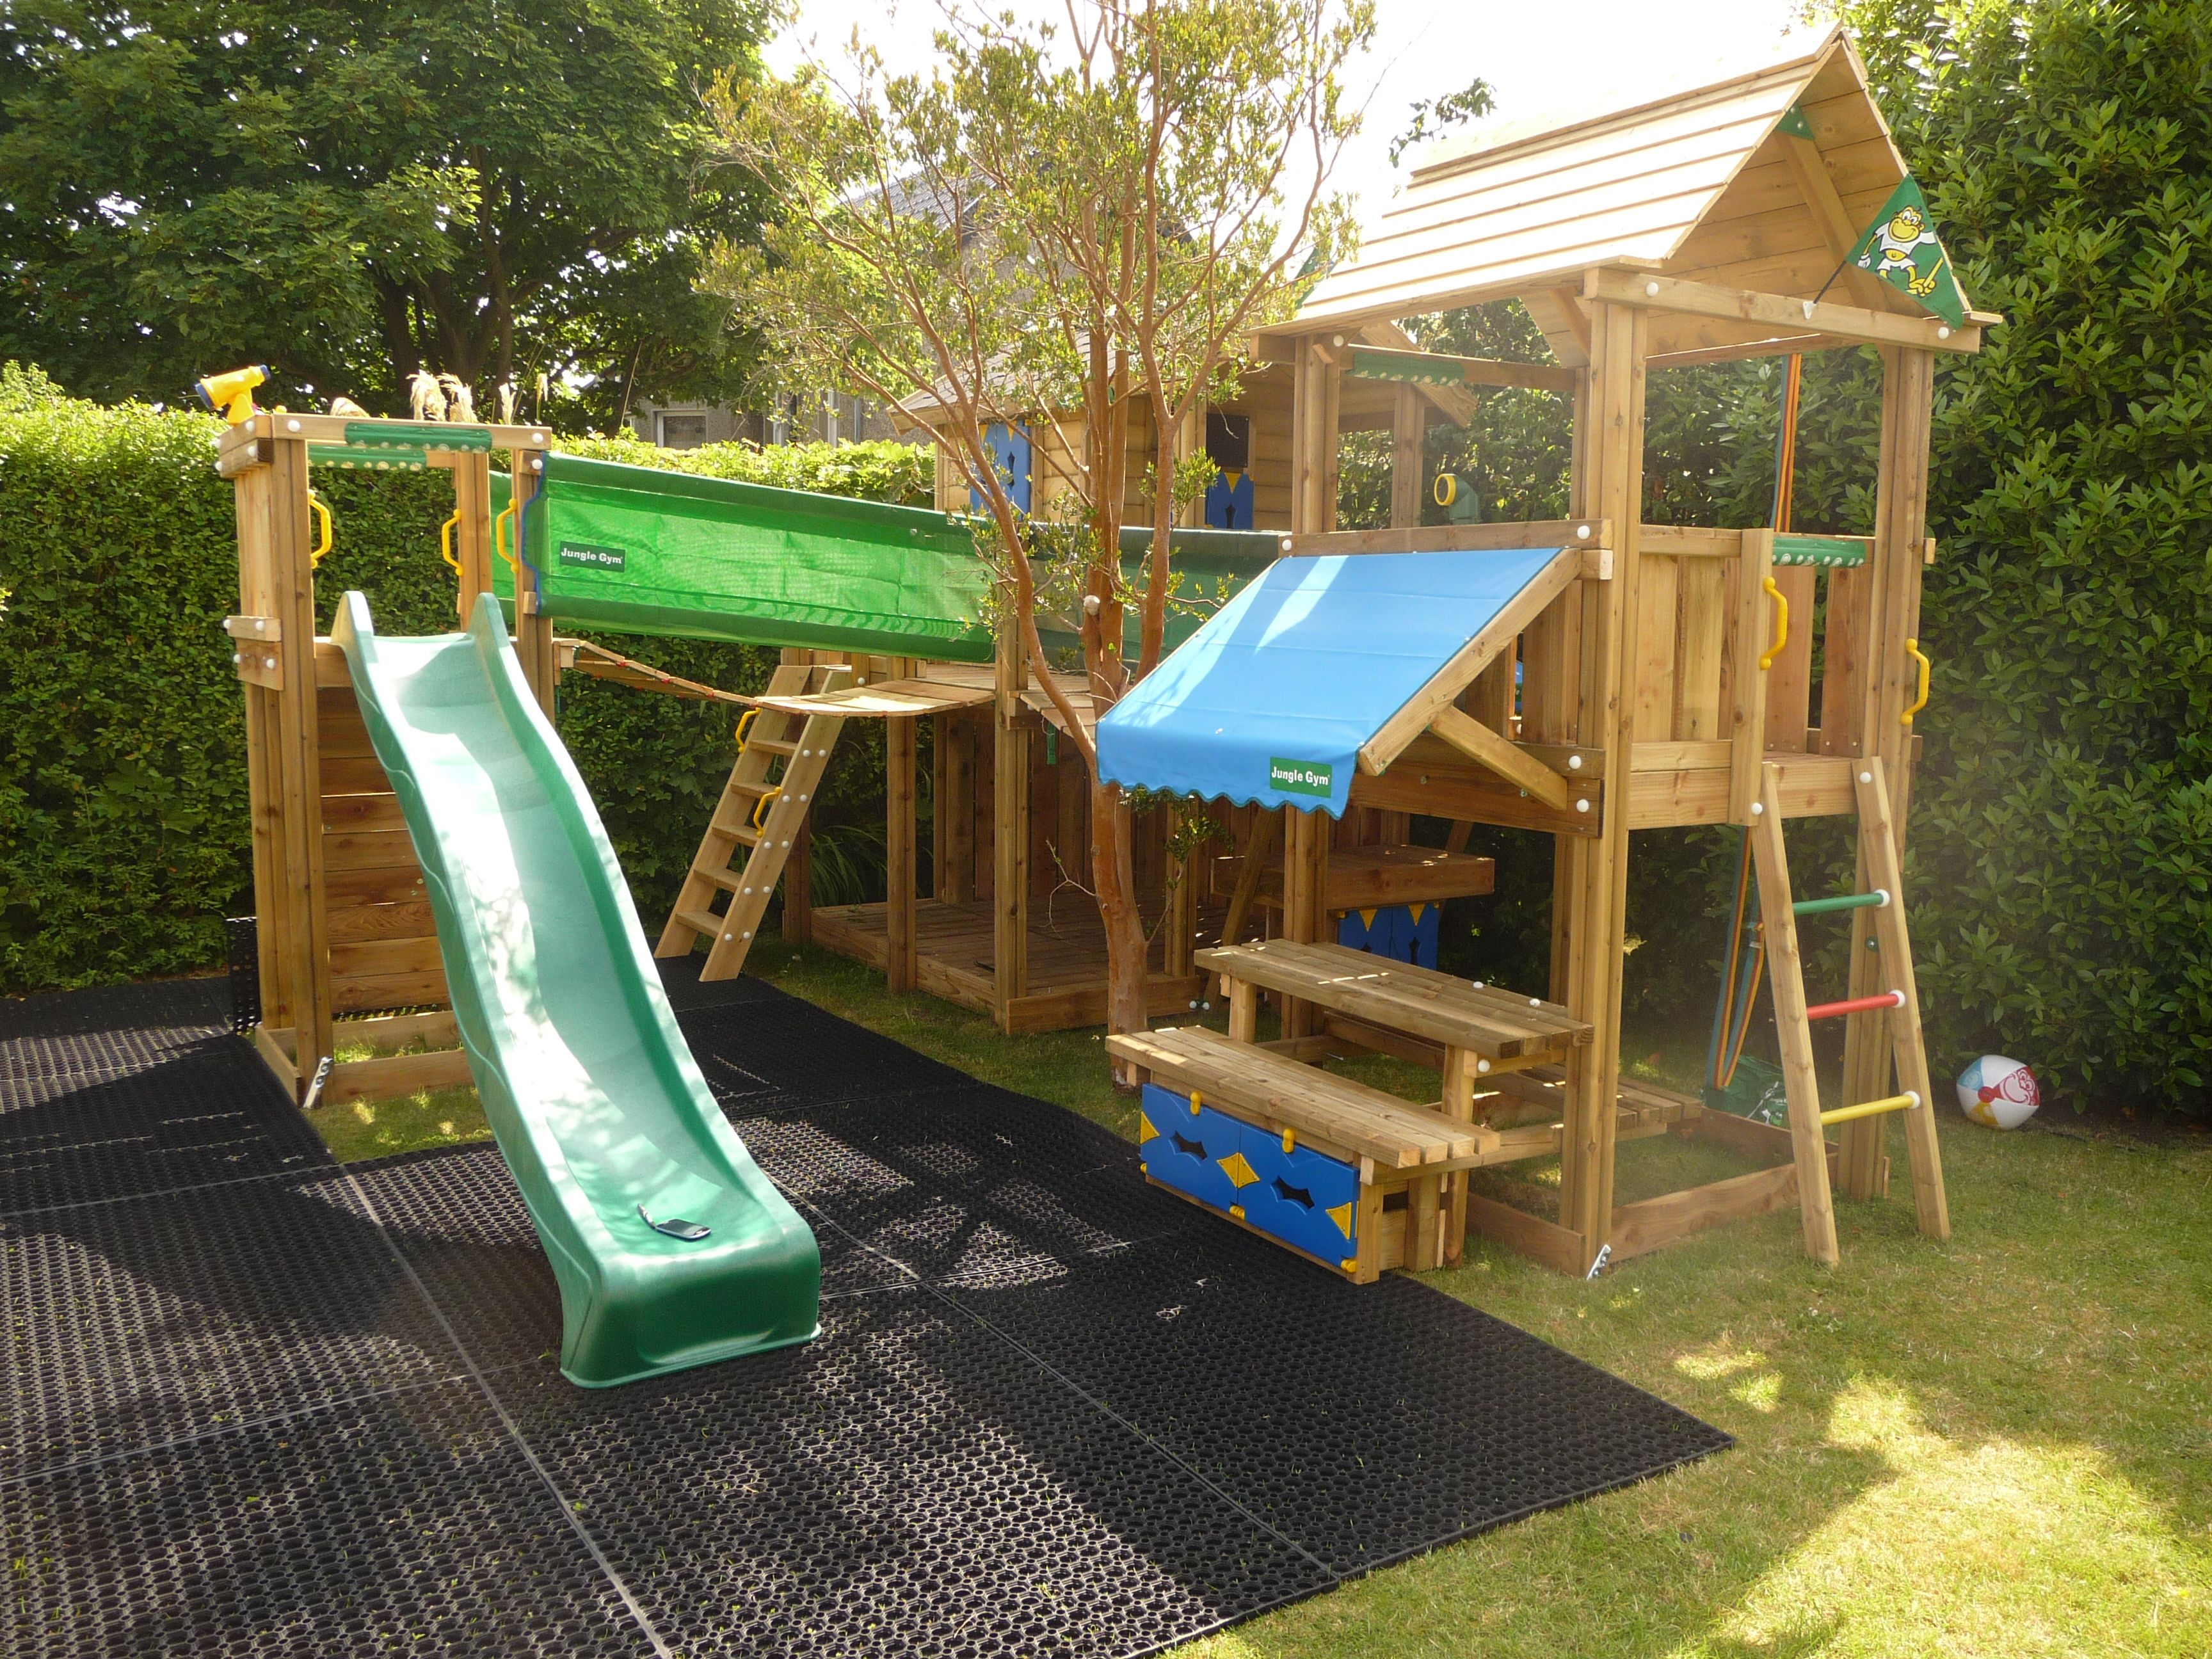 Jungle Gym Built By David Dean For Woodstoc Northern Ireland.